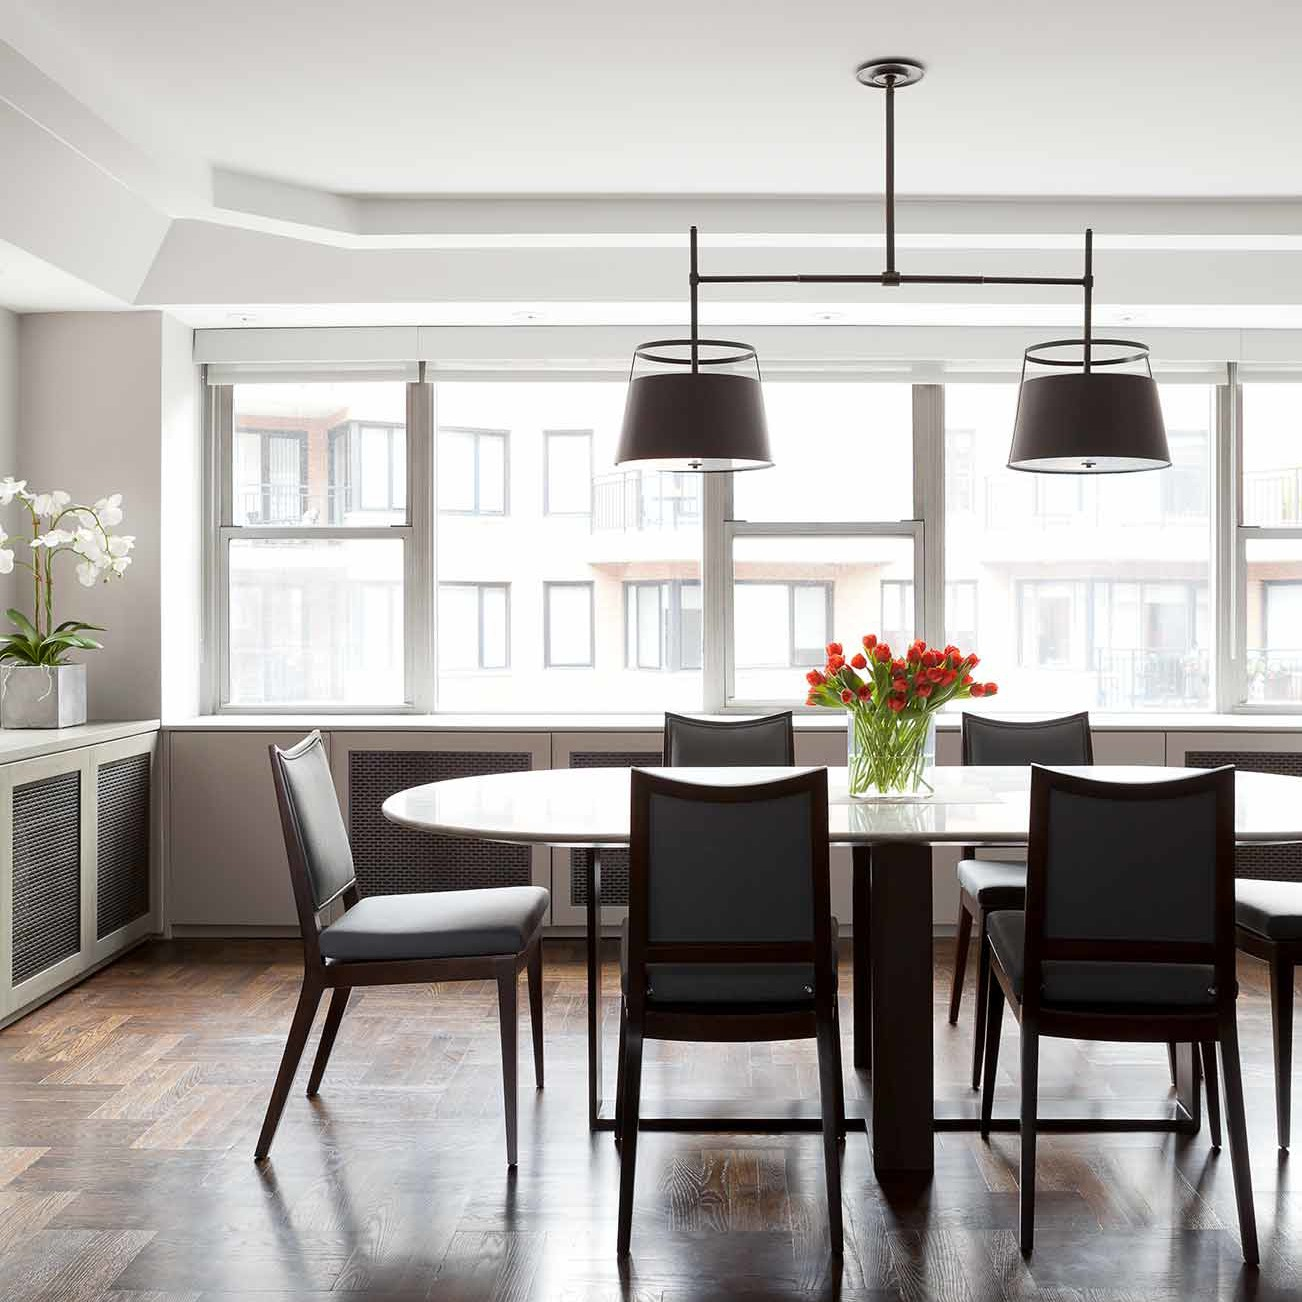 Dining room design by NYC's top interior design firm Darci Hether New York